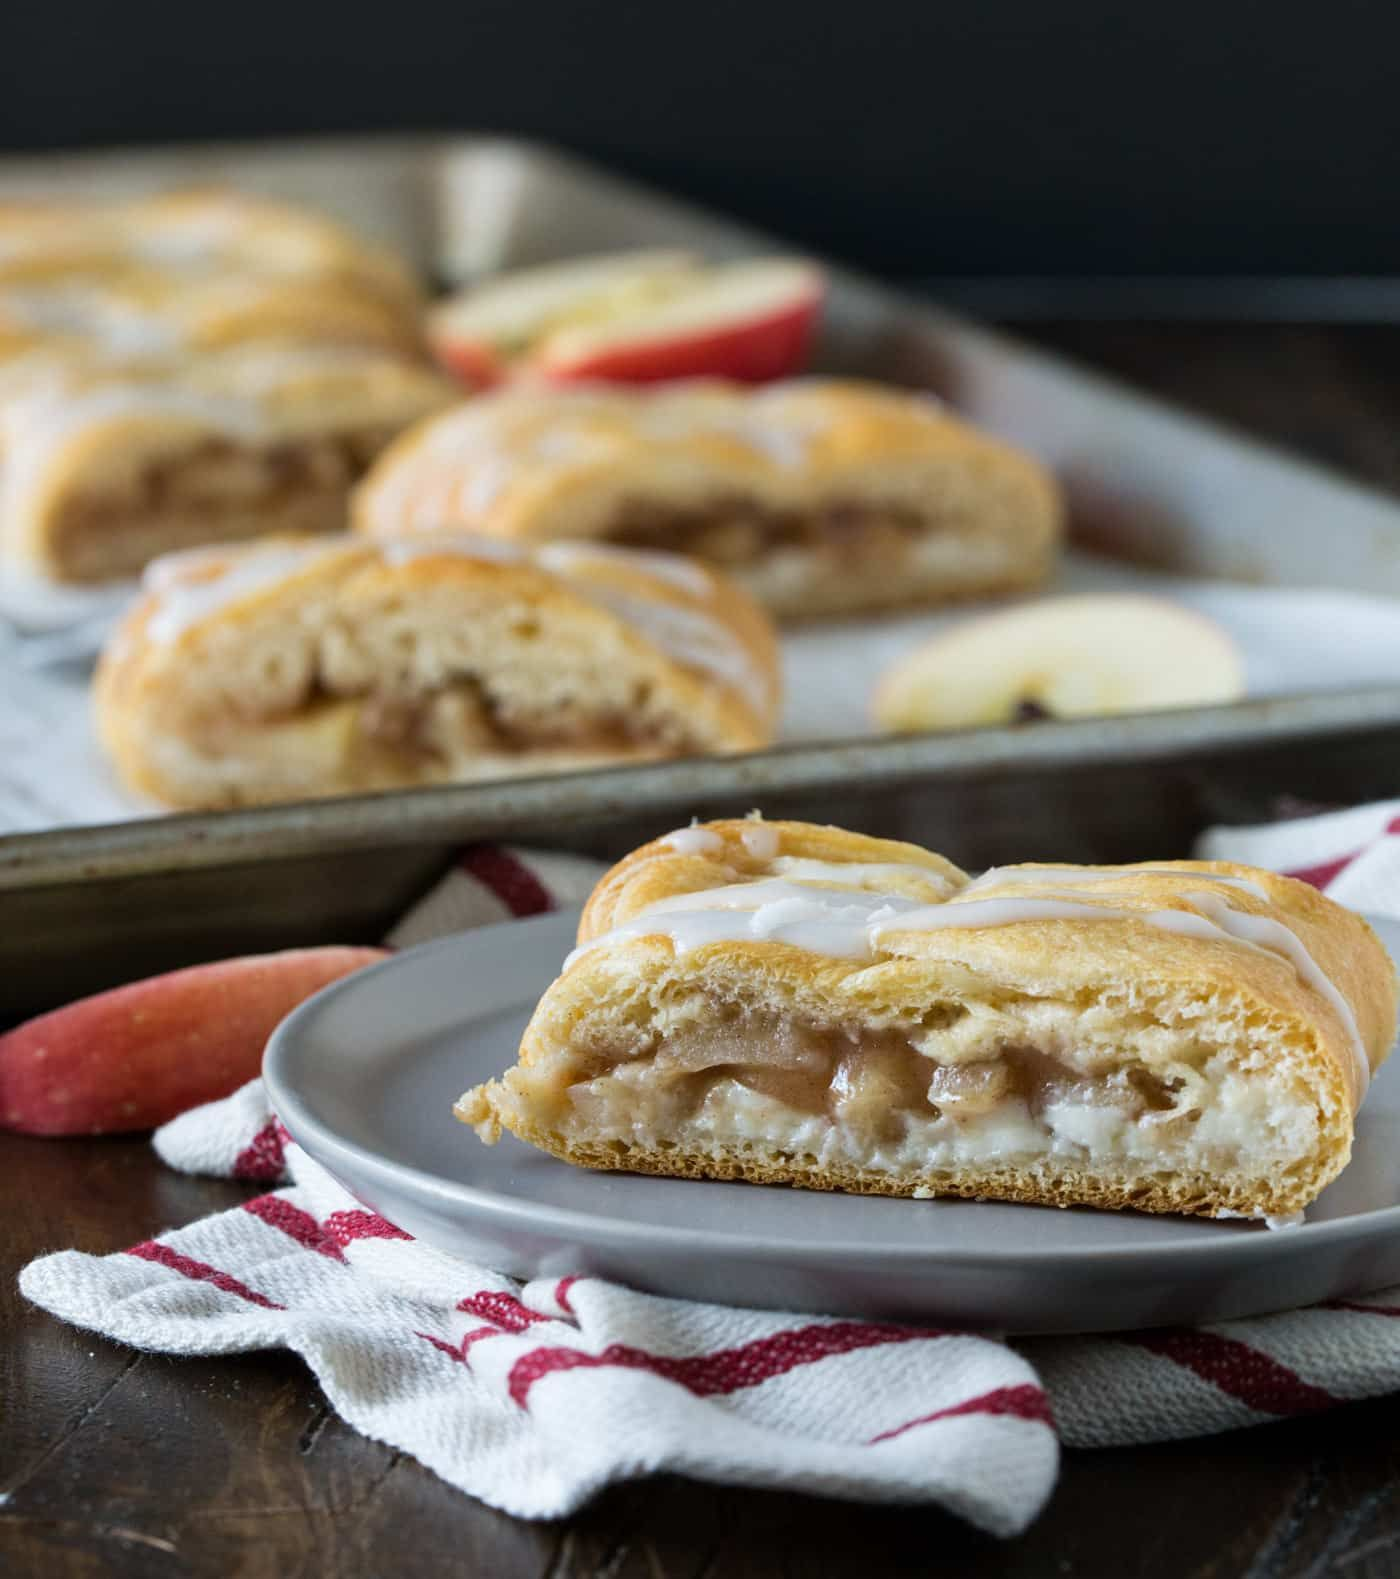 Best Breakfast Recipes Of All Time From People: This Easy Apple Cream Cheese Danish Is A Delicious